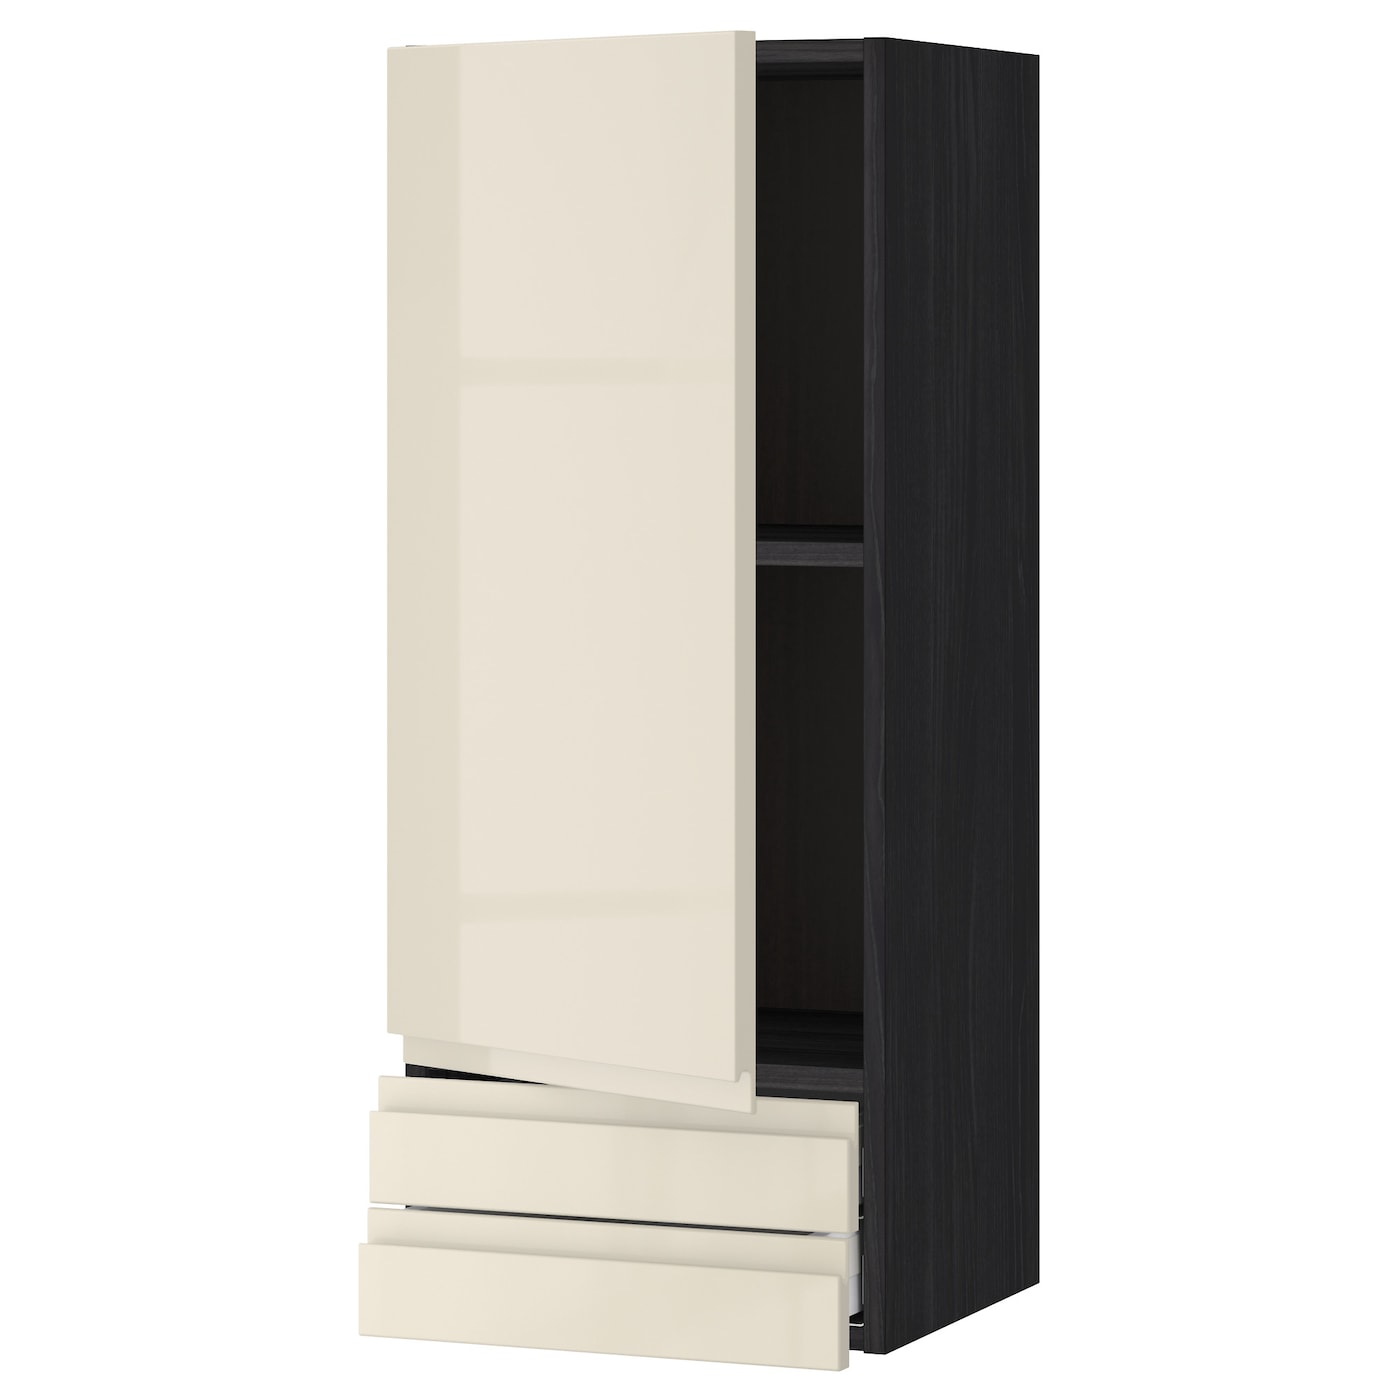 Metod Wall Cabinet With 2 Doors White Voxtorp High Gloss: METOD/MAXIMERA Wall Cabinet With Door/2 Drawers Black